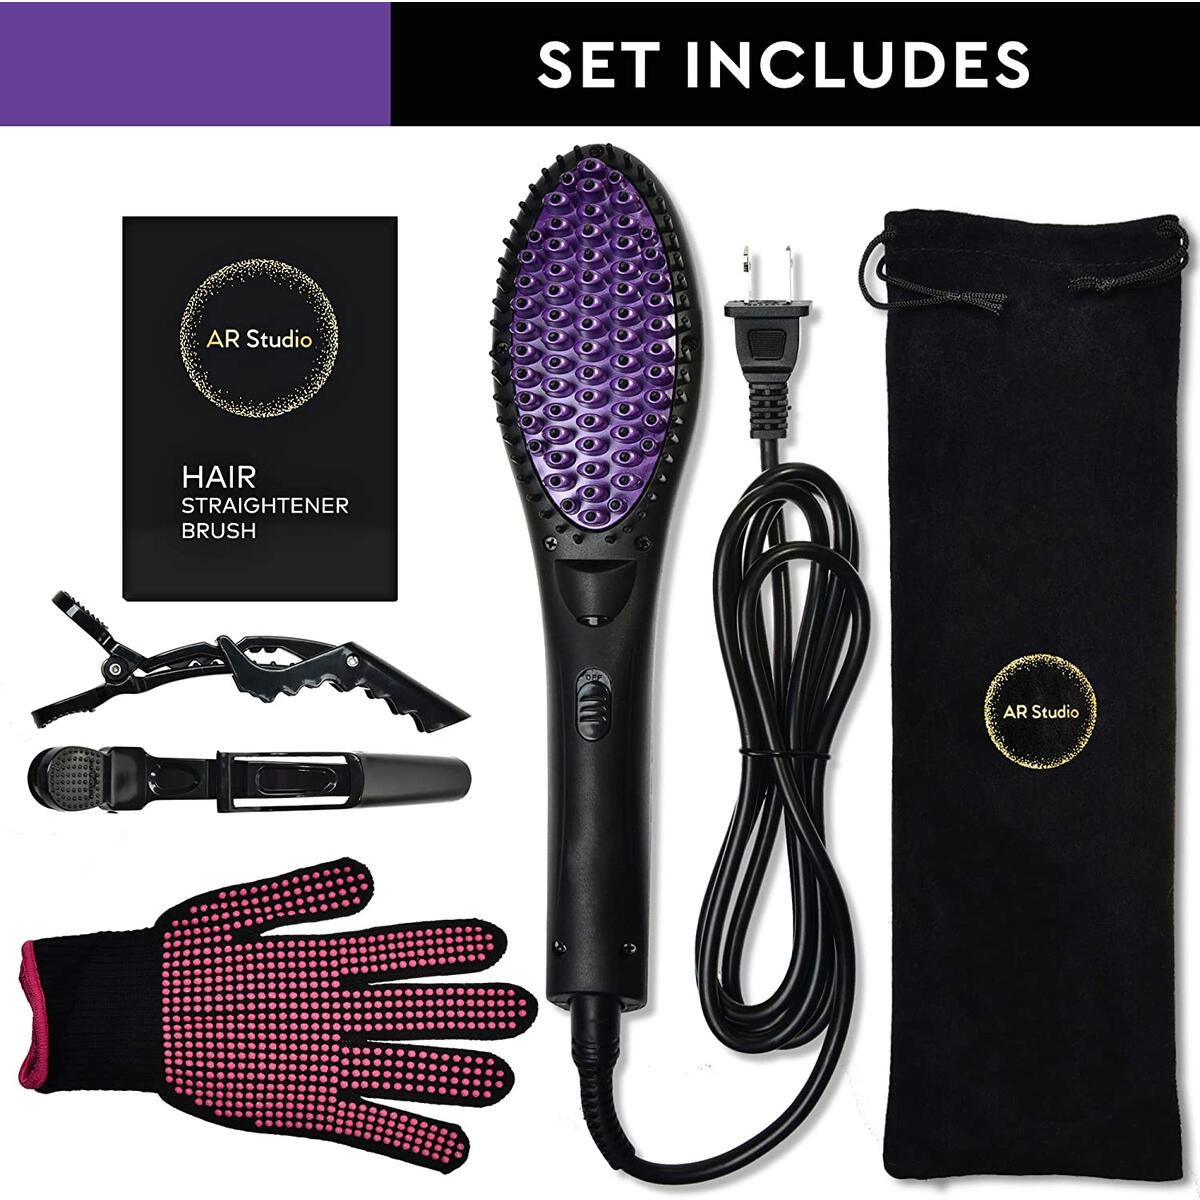 Straightening Hair Straightener Brush Flat Iron Comb Ionic Anti-Scald Faster Heating MCH Ceramic Technology with LED Display Portable Auto Shut Off for Silky Shine Hair